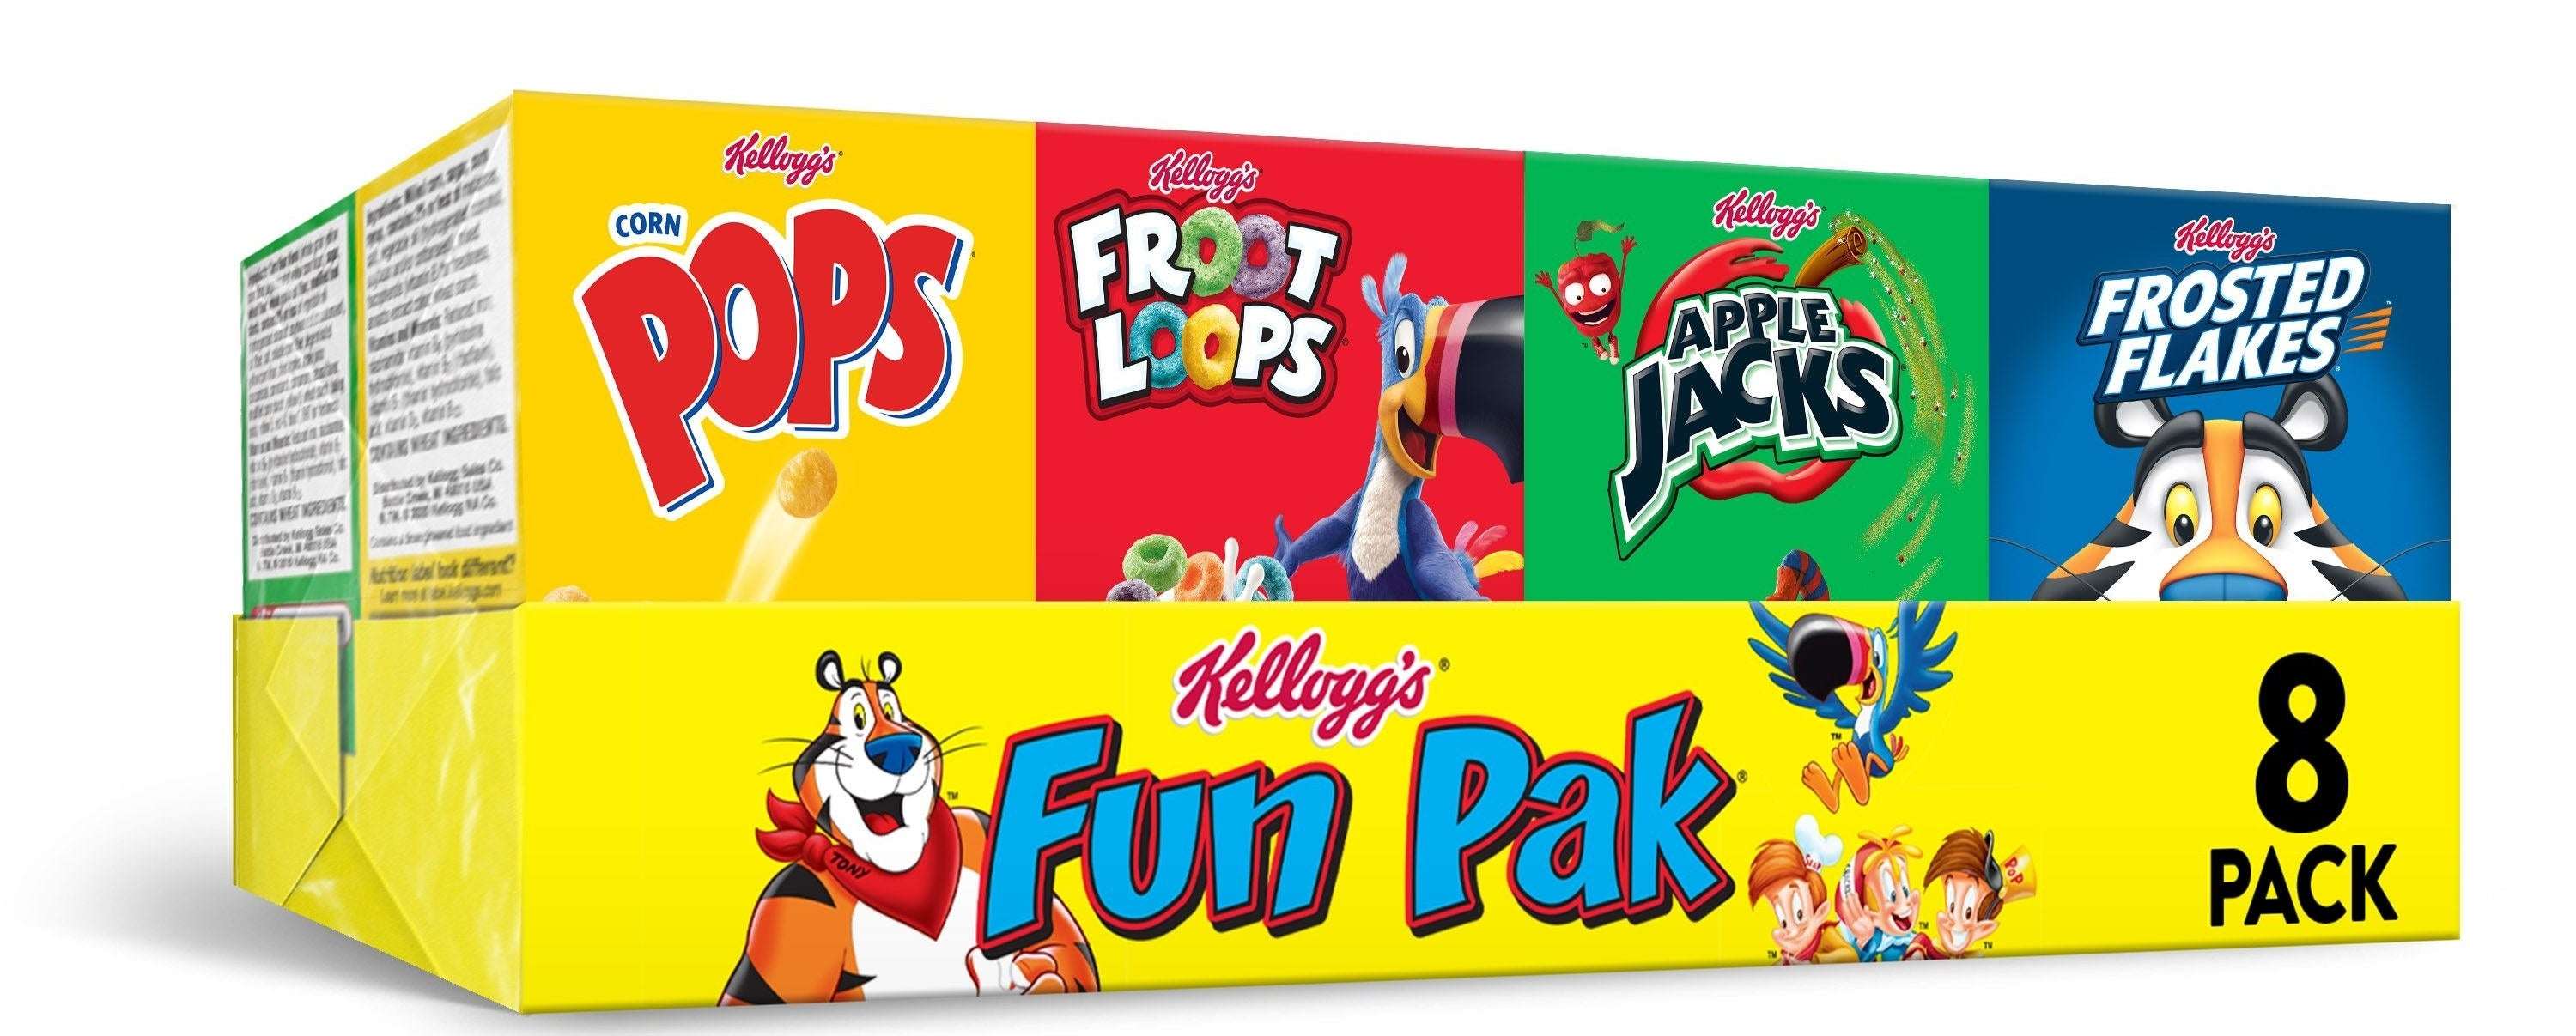 Kellogg's fun pak with corn pops, fruit loops, apple jacks and frosted flakes